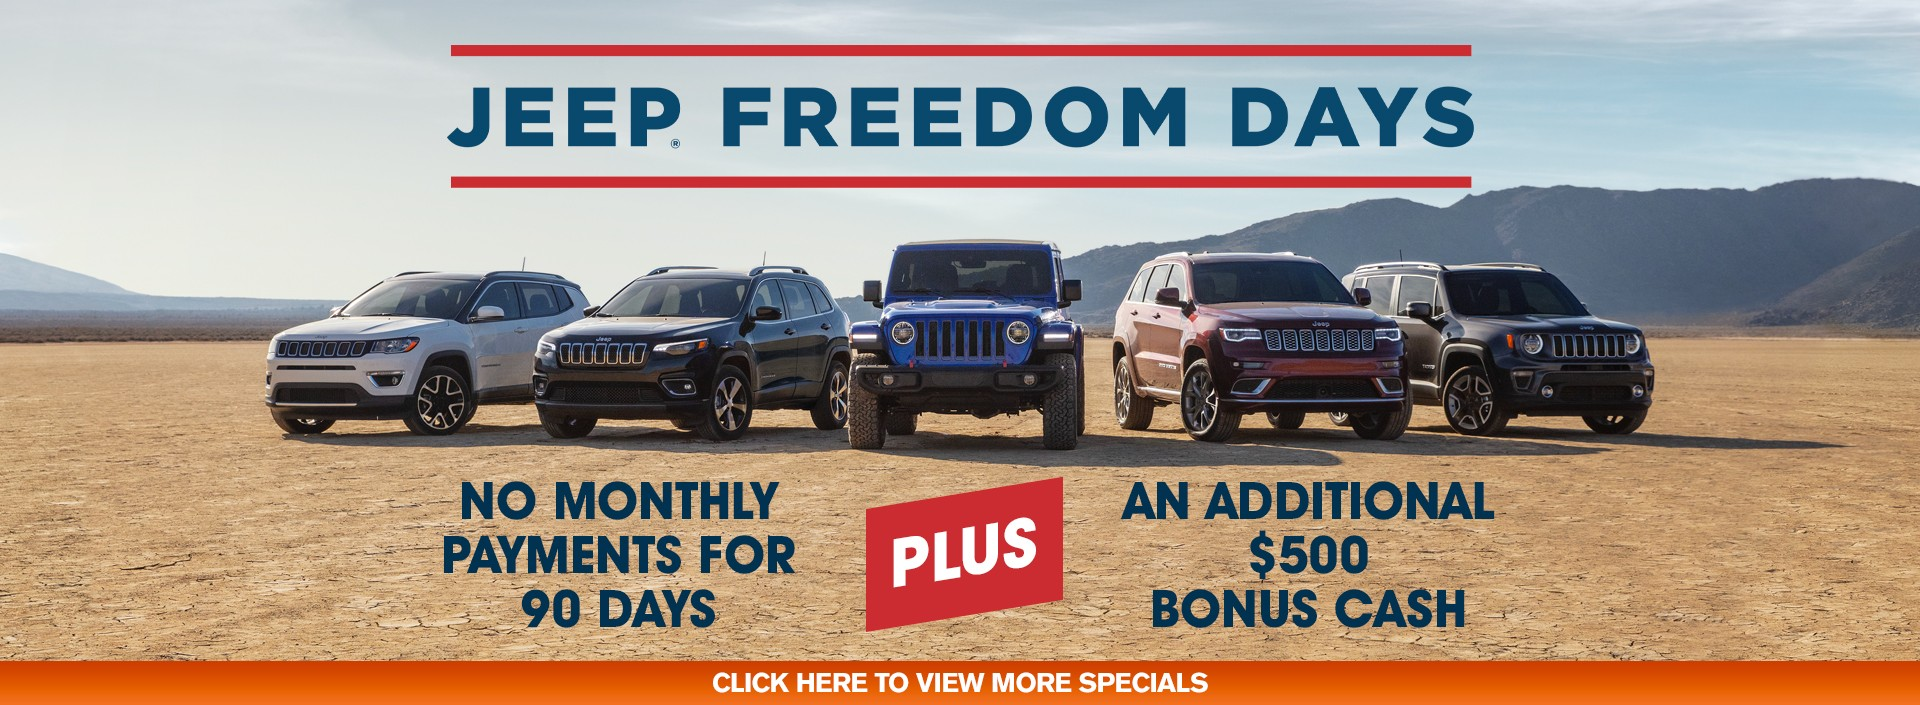 Jeep Freedom Days